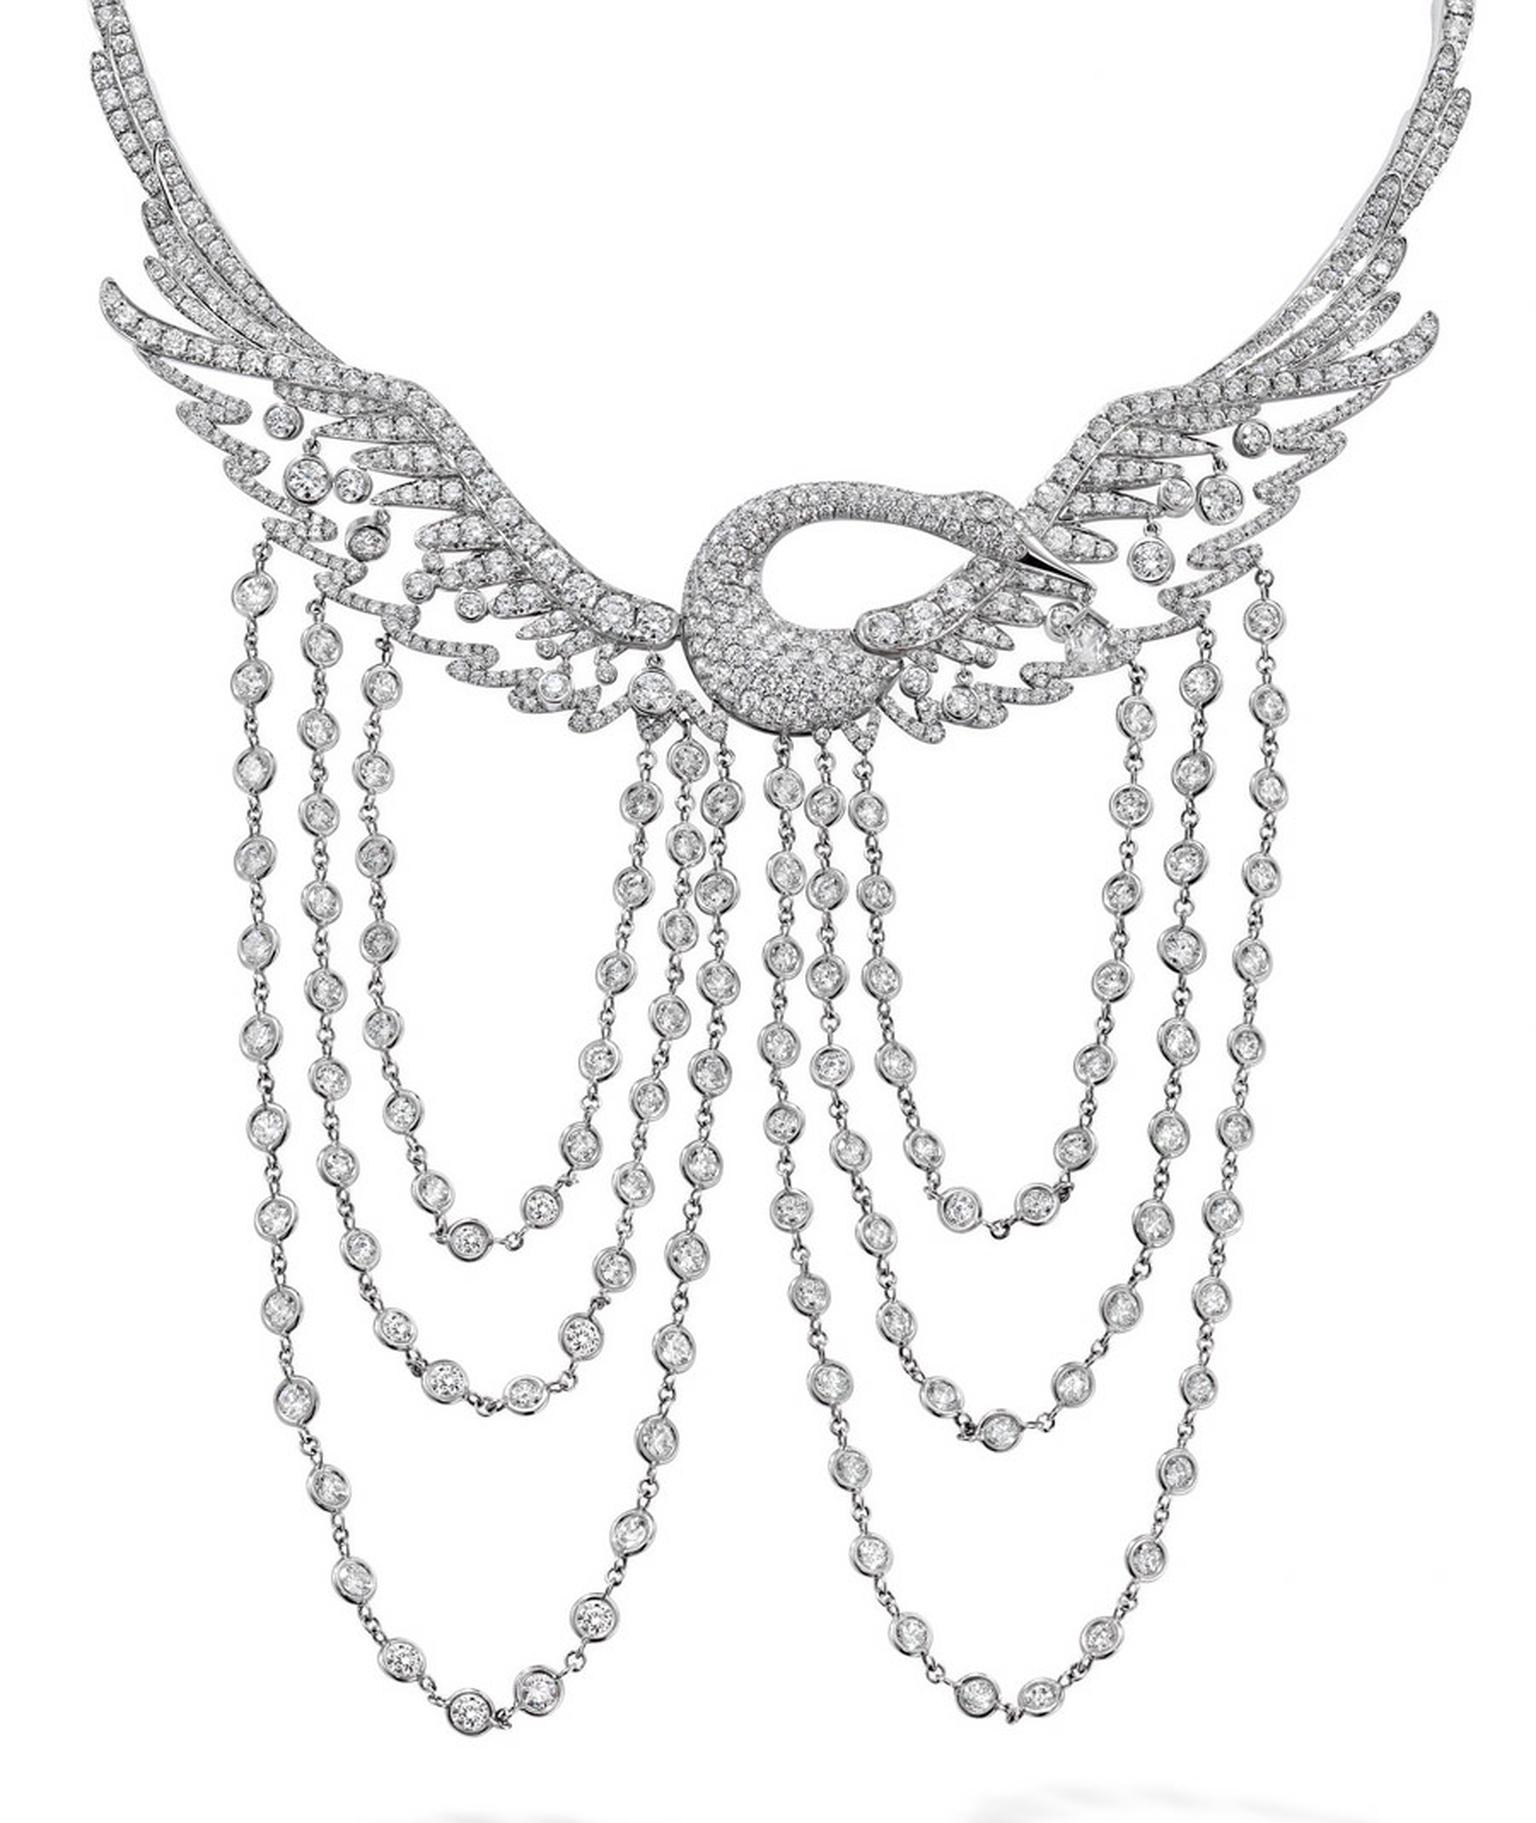 boodles-wonderland-Wild-Swan-necklace.jpg